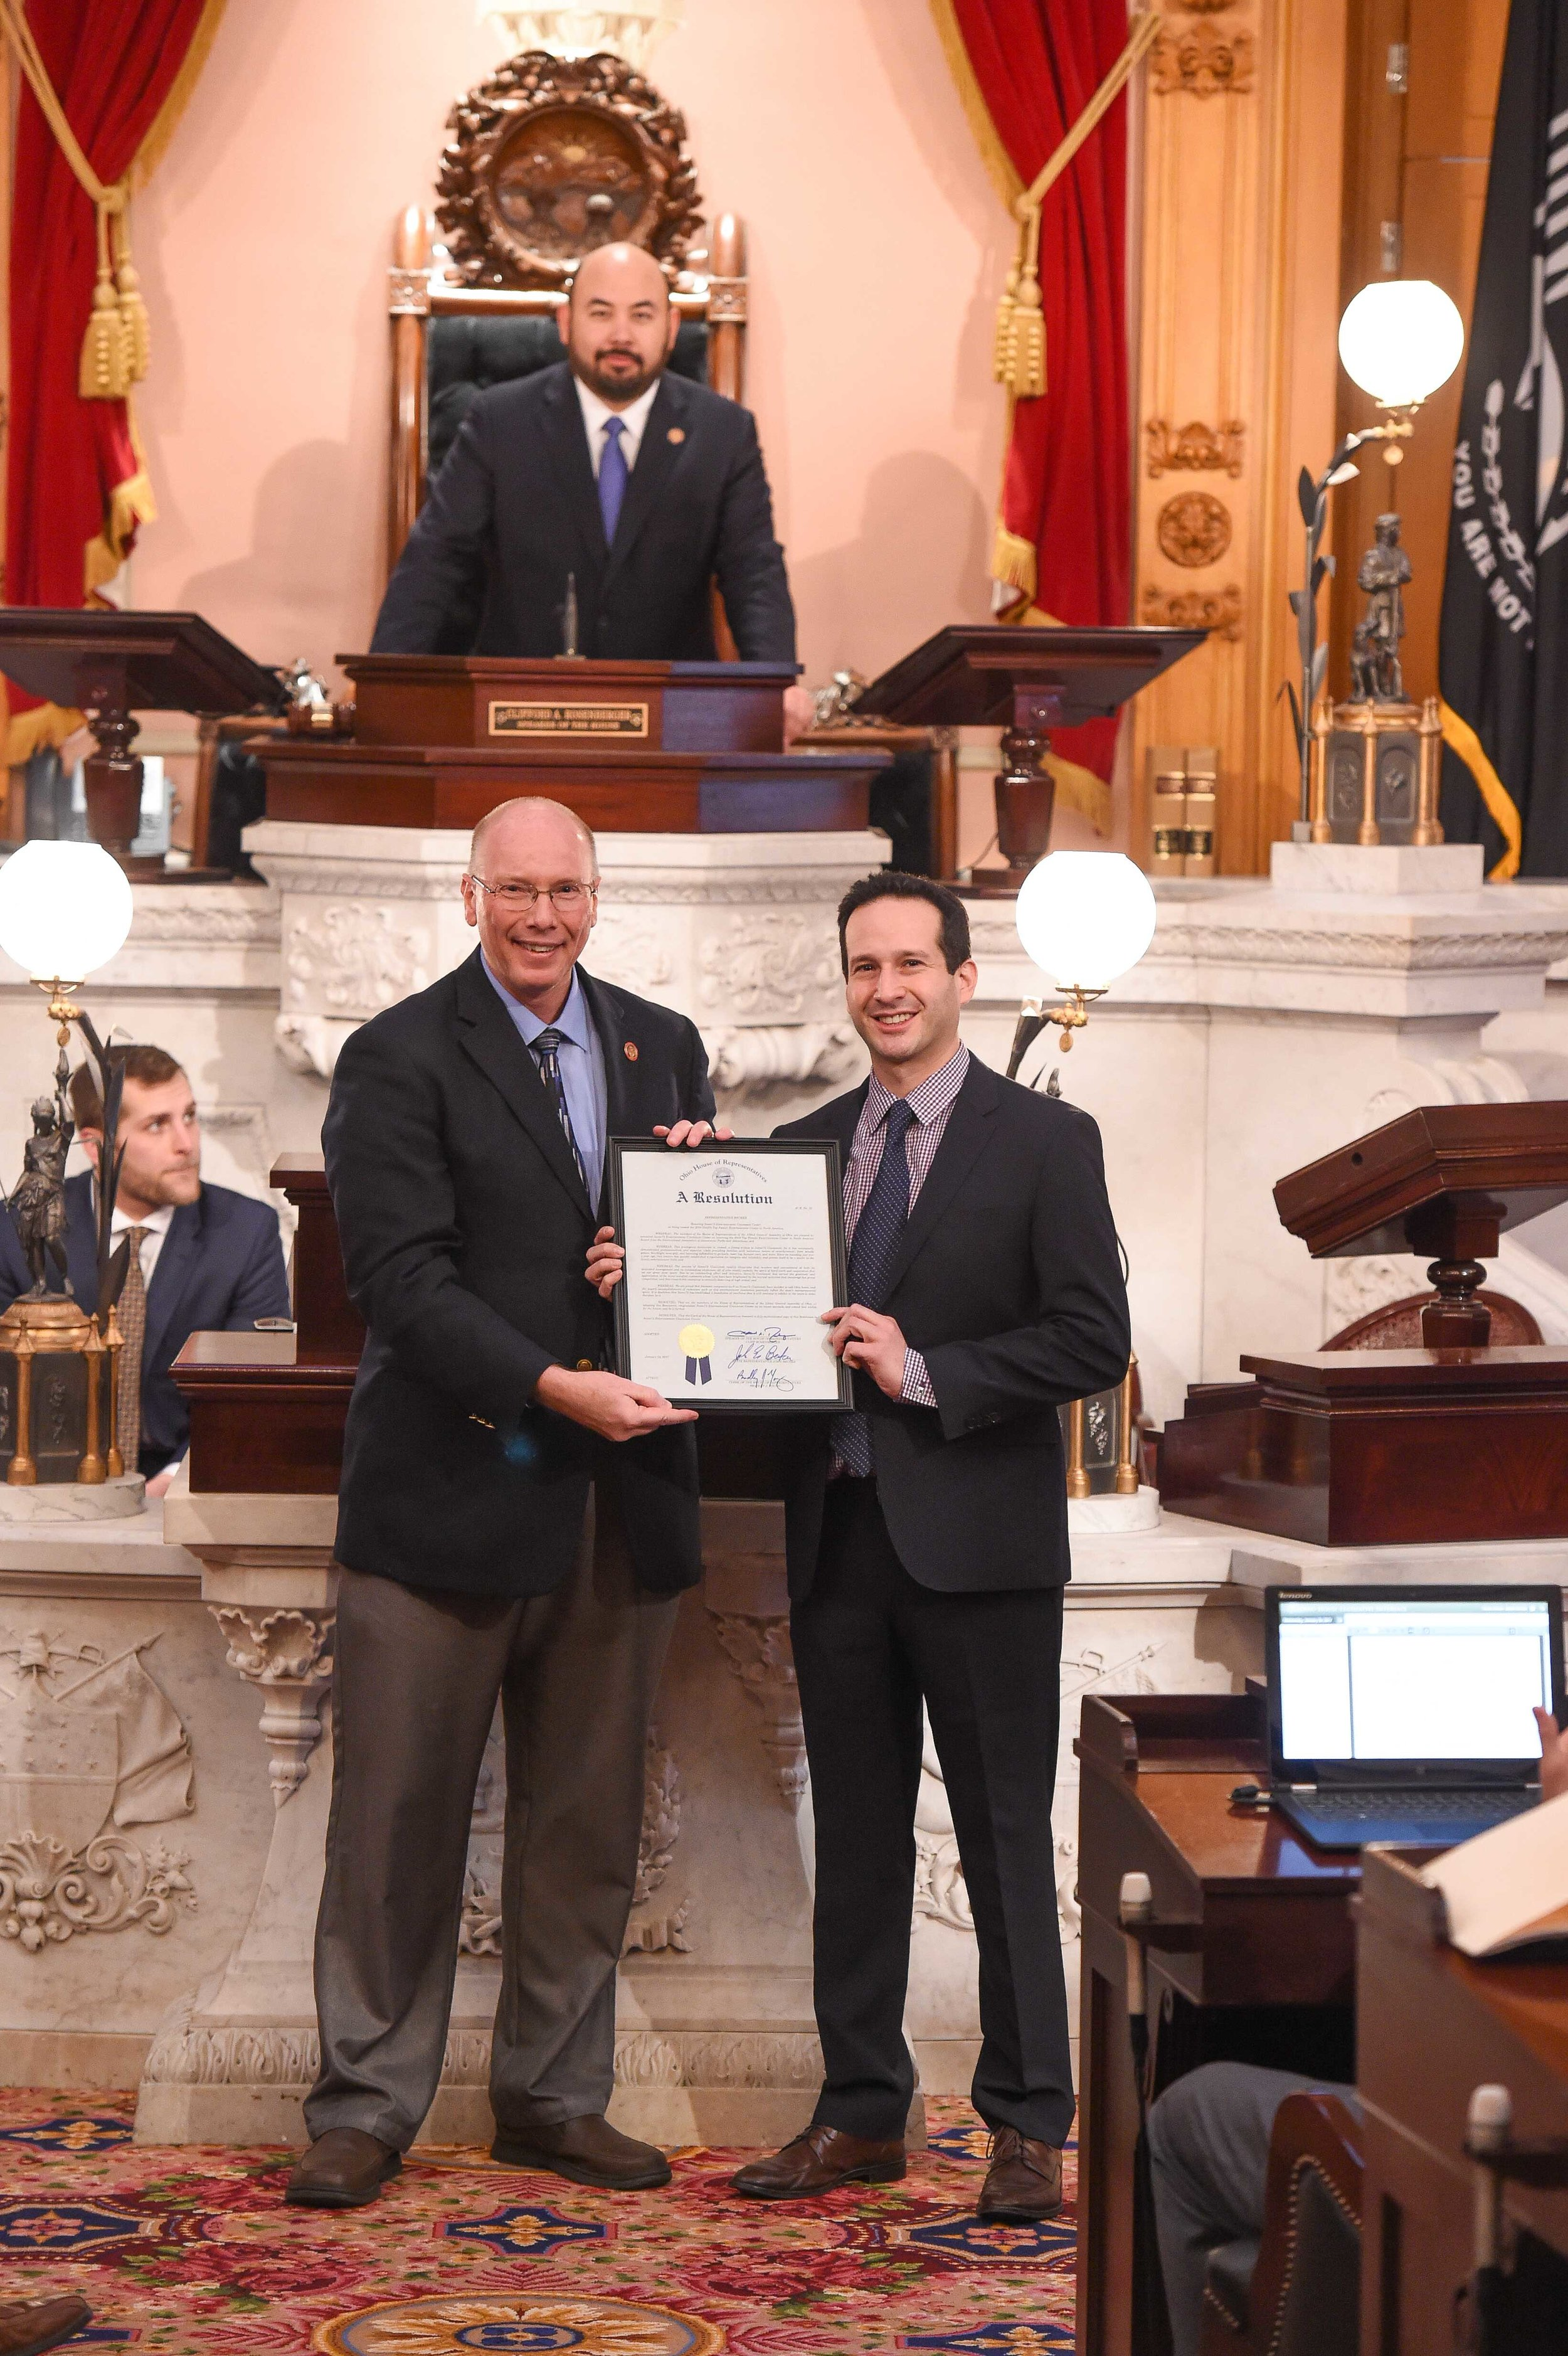 Ohio State Representative John Becker (R-Union Township) presents the resolution to Scene75 Entertainment CEO Jonah Sandler with Speaker of the Ohio House of Representatives Cliff Rosenberger presiding in the chambers.